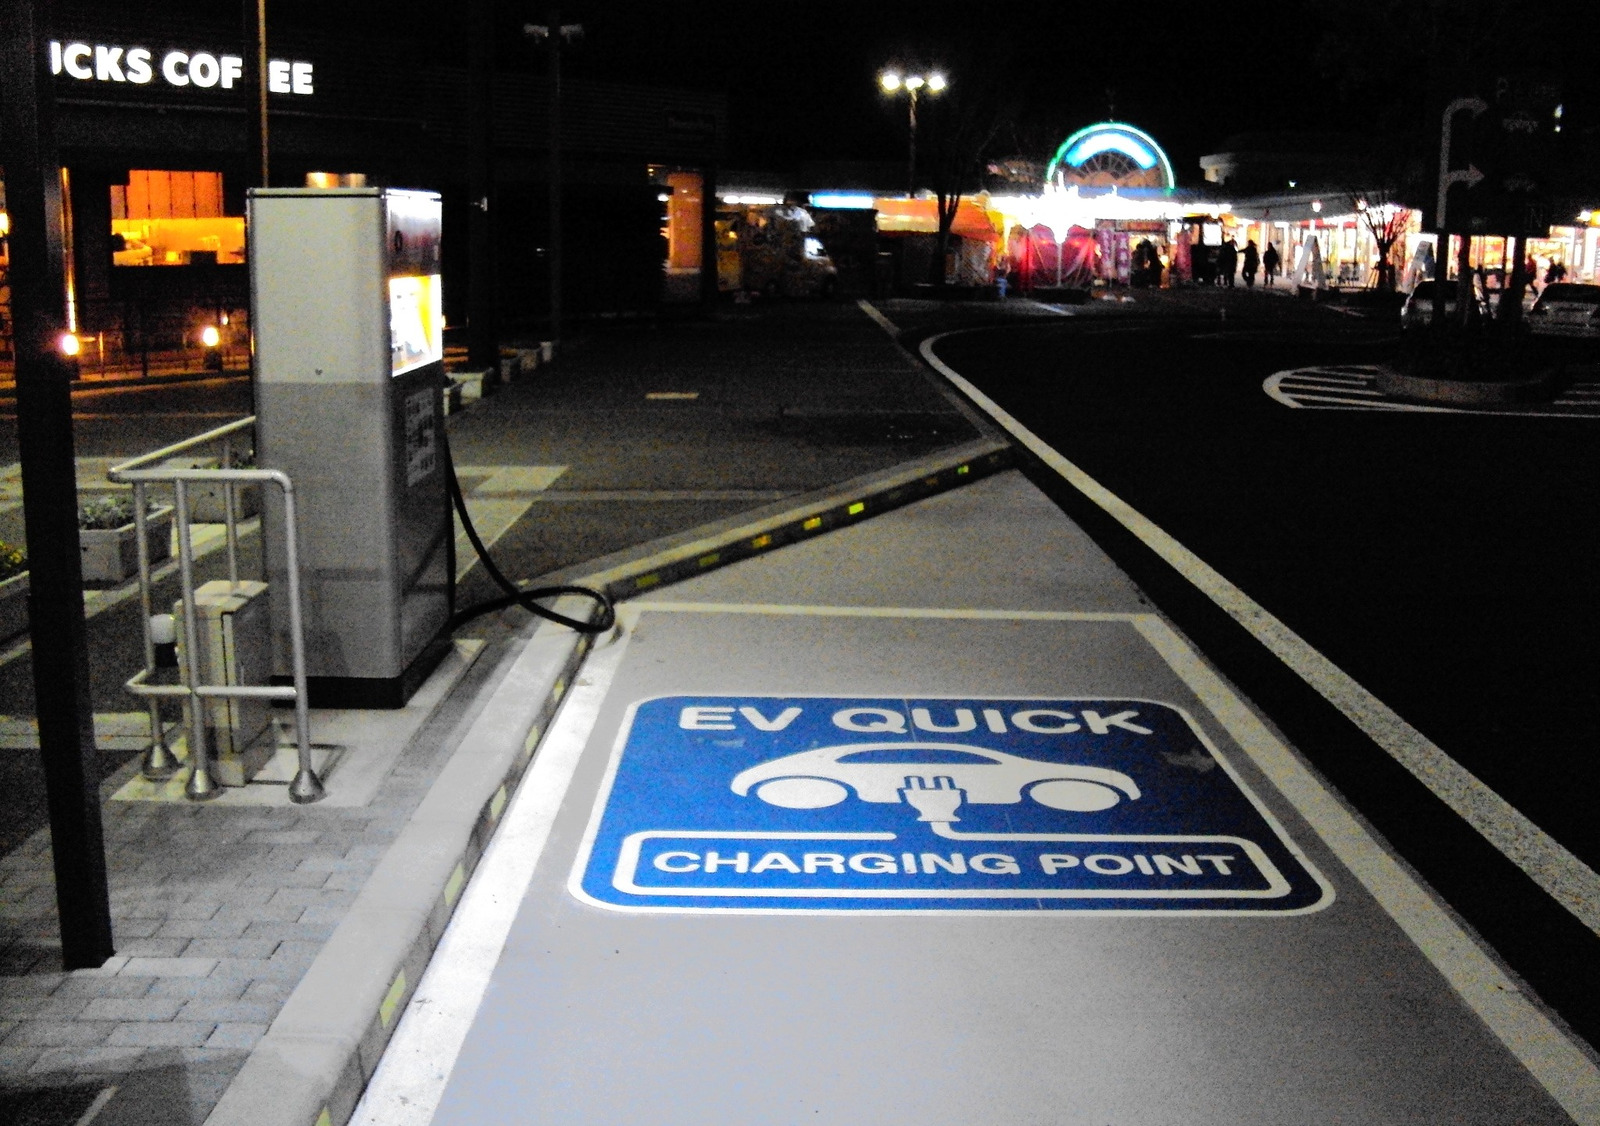 Evchargepoint